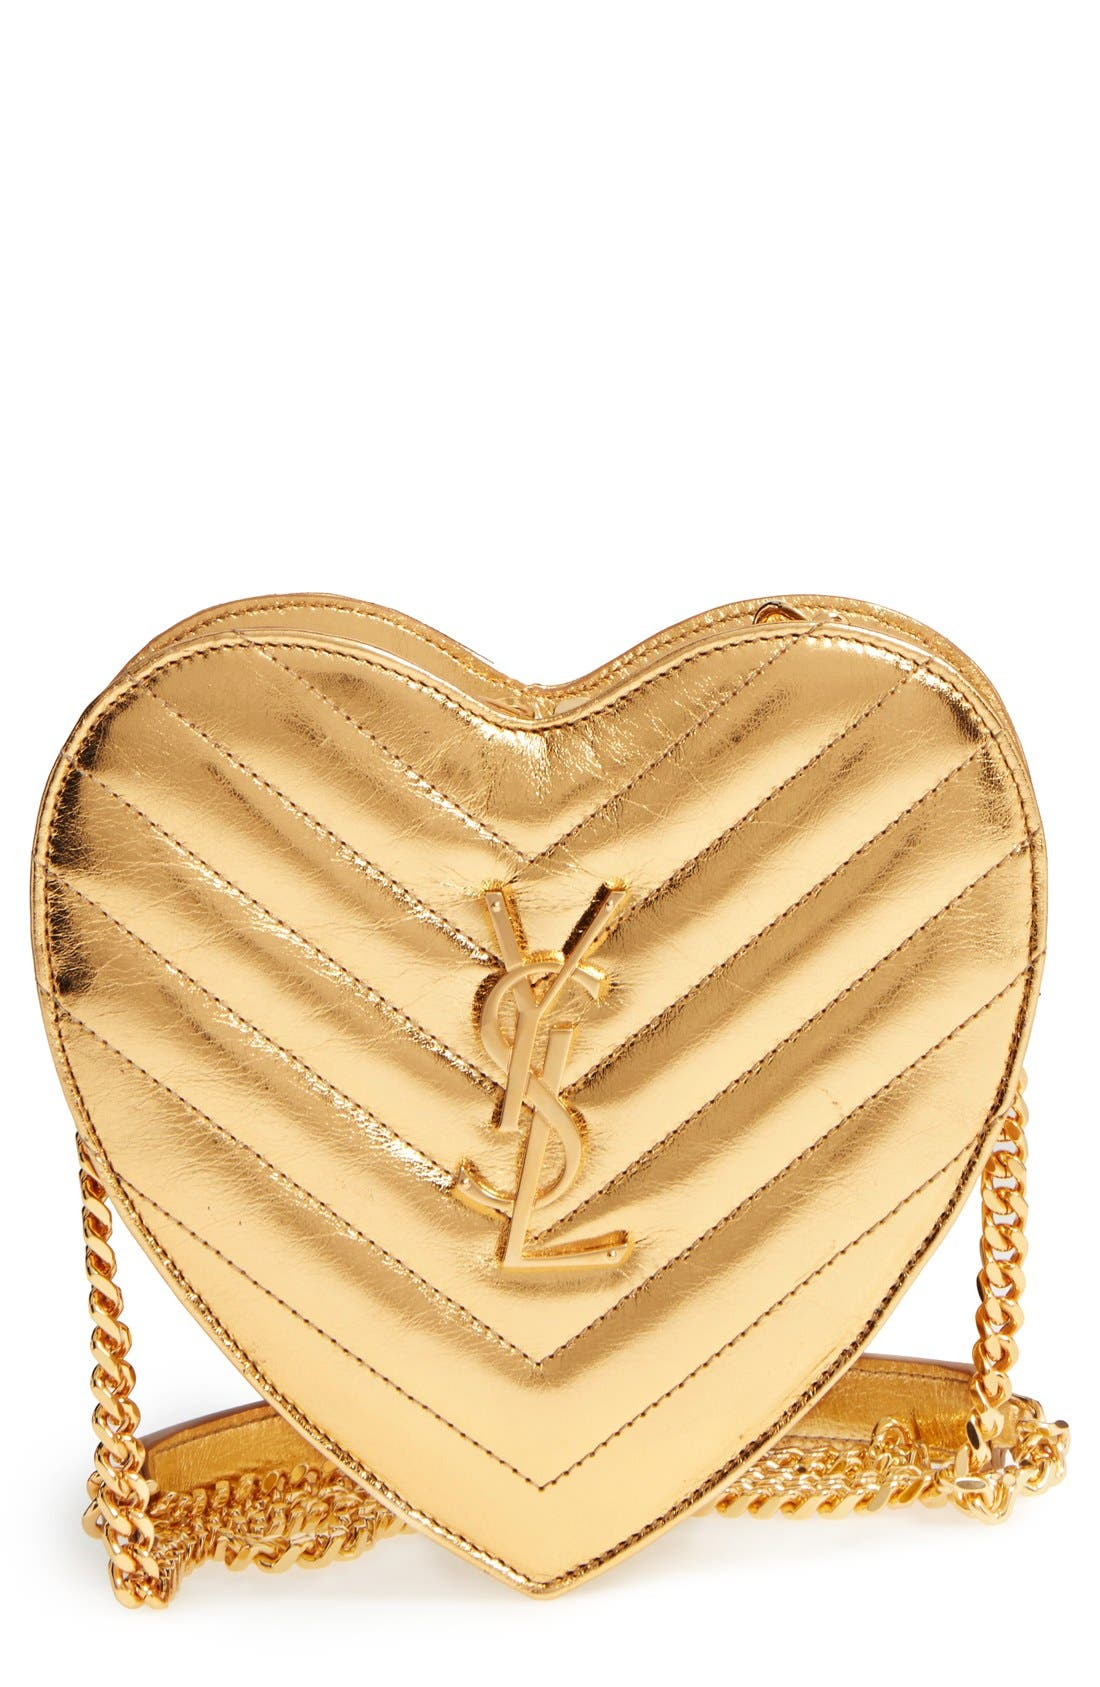 SAINT LAURENT 'Small Heart' Quilted Leather Crossbody Bag, Main, color, 717